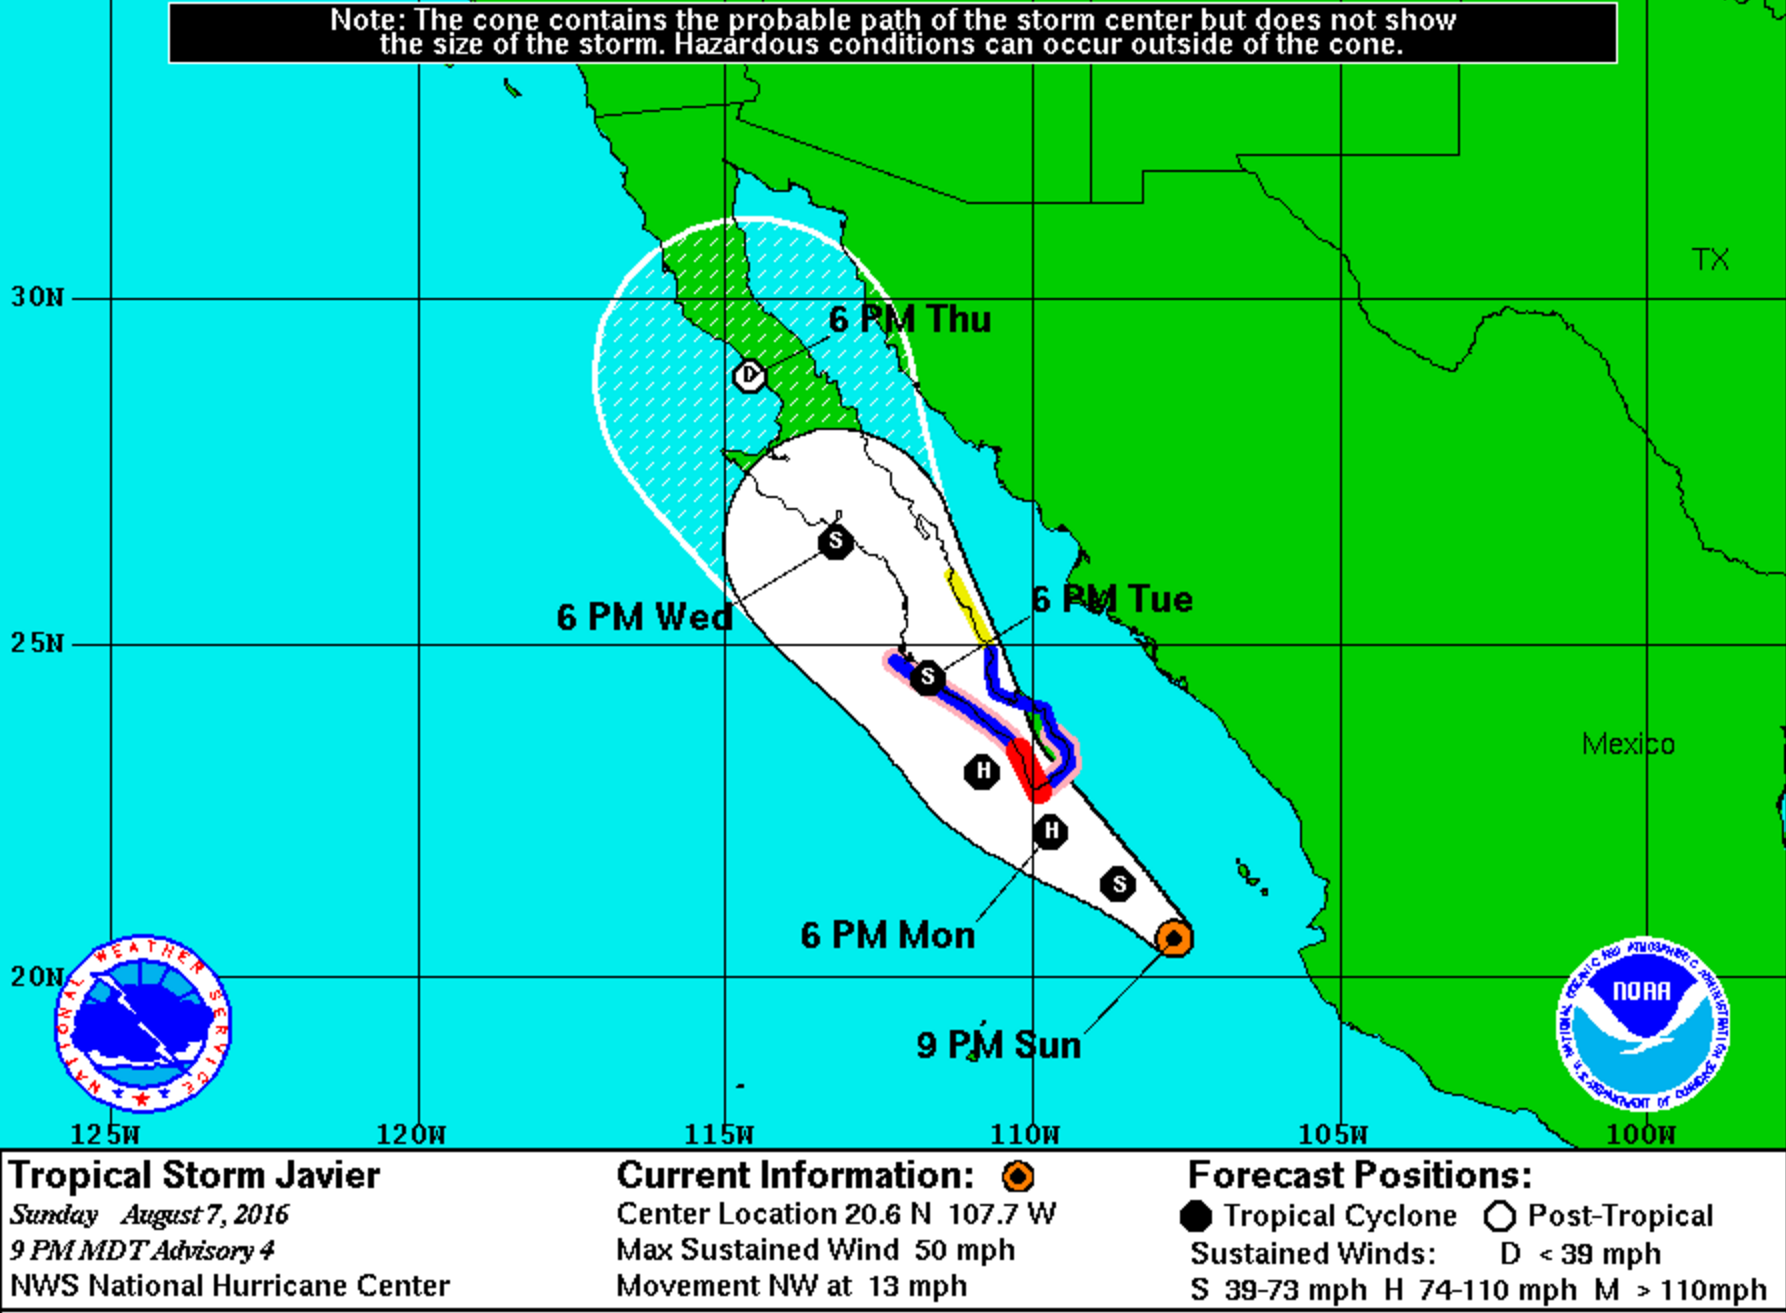 Javier is forecast to become a hurricane and make landfall in western Mexico by mid-week. Strong southerly winds on the eastern side of the storm will advect moisture into Colorado